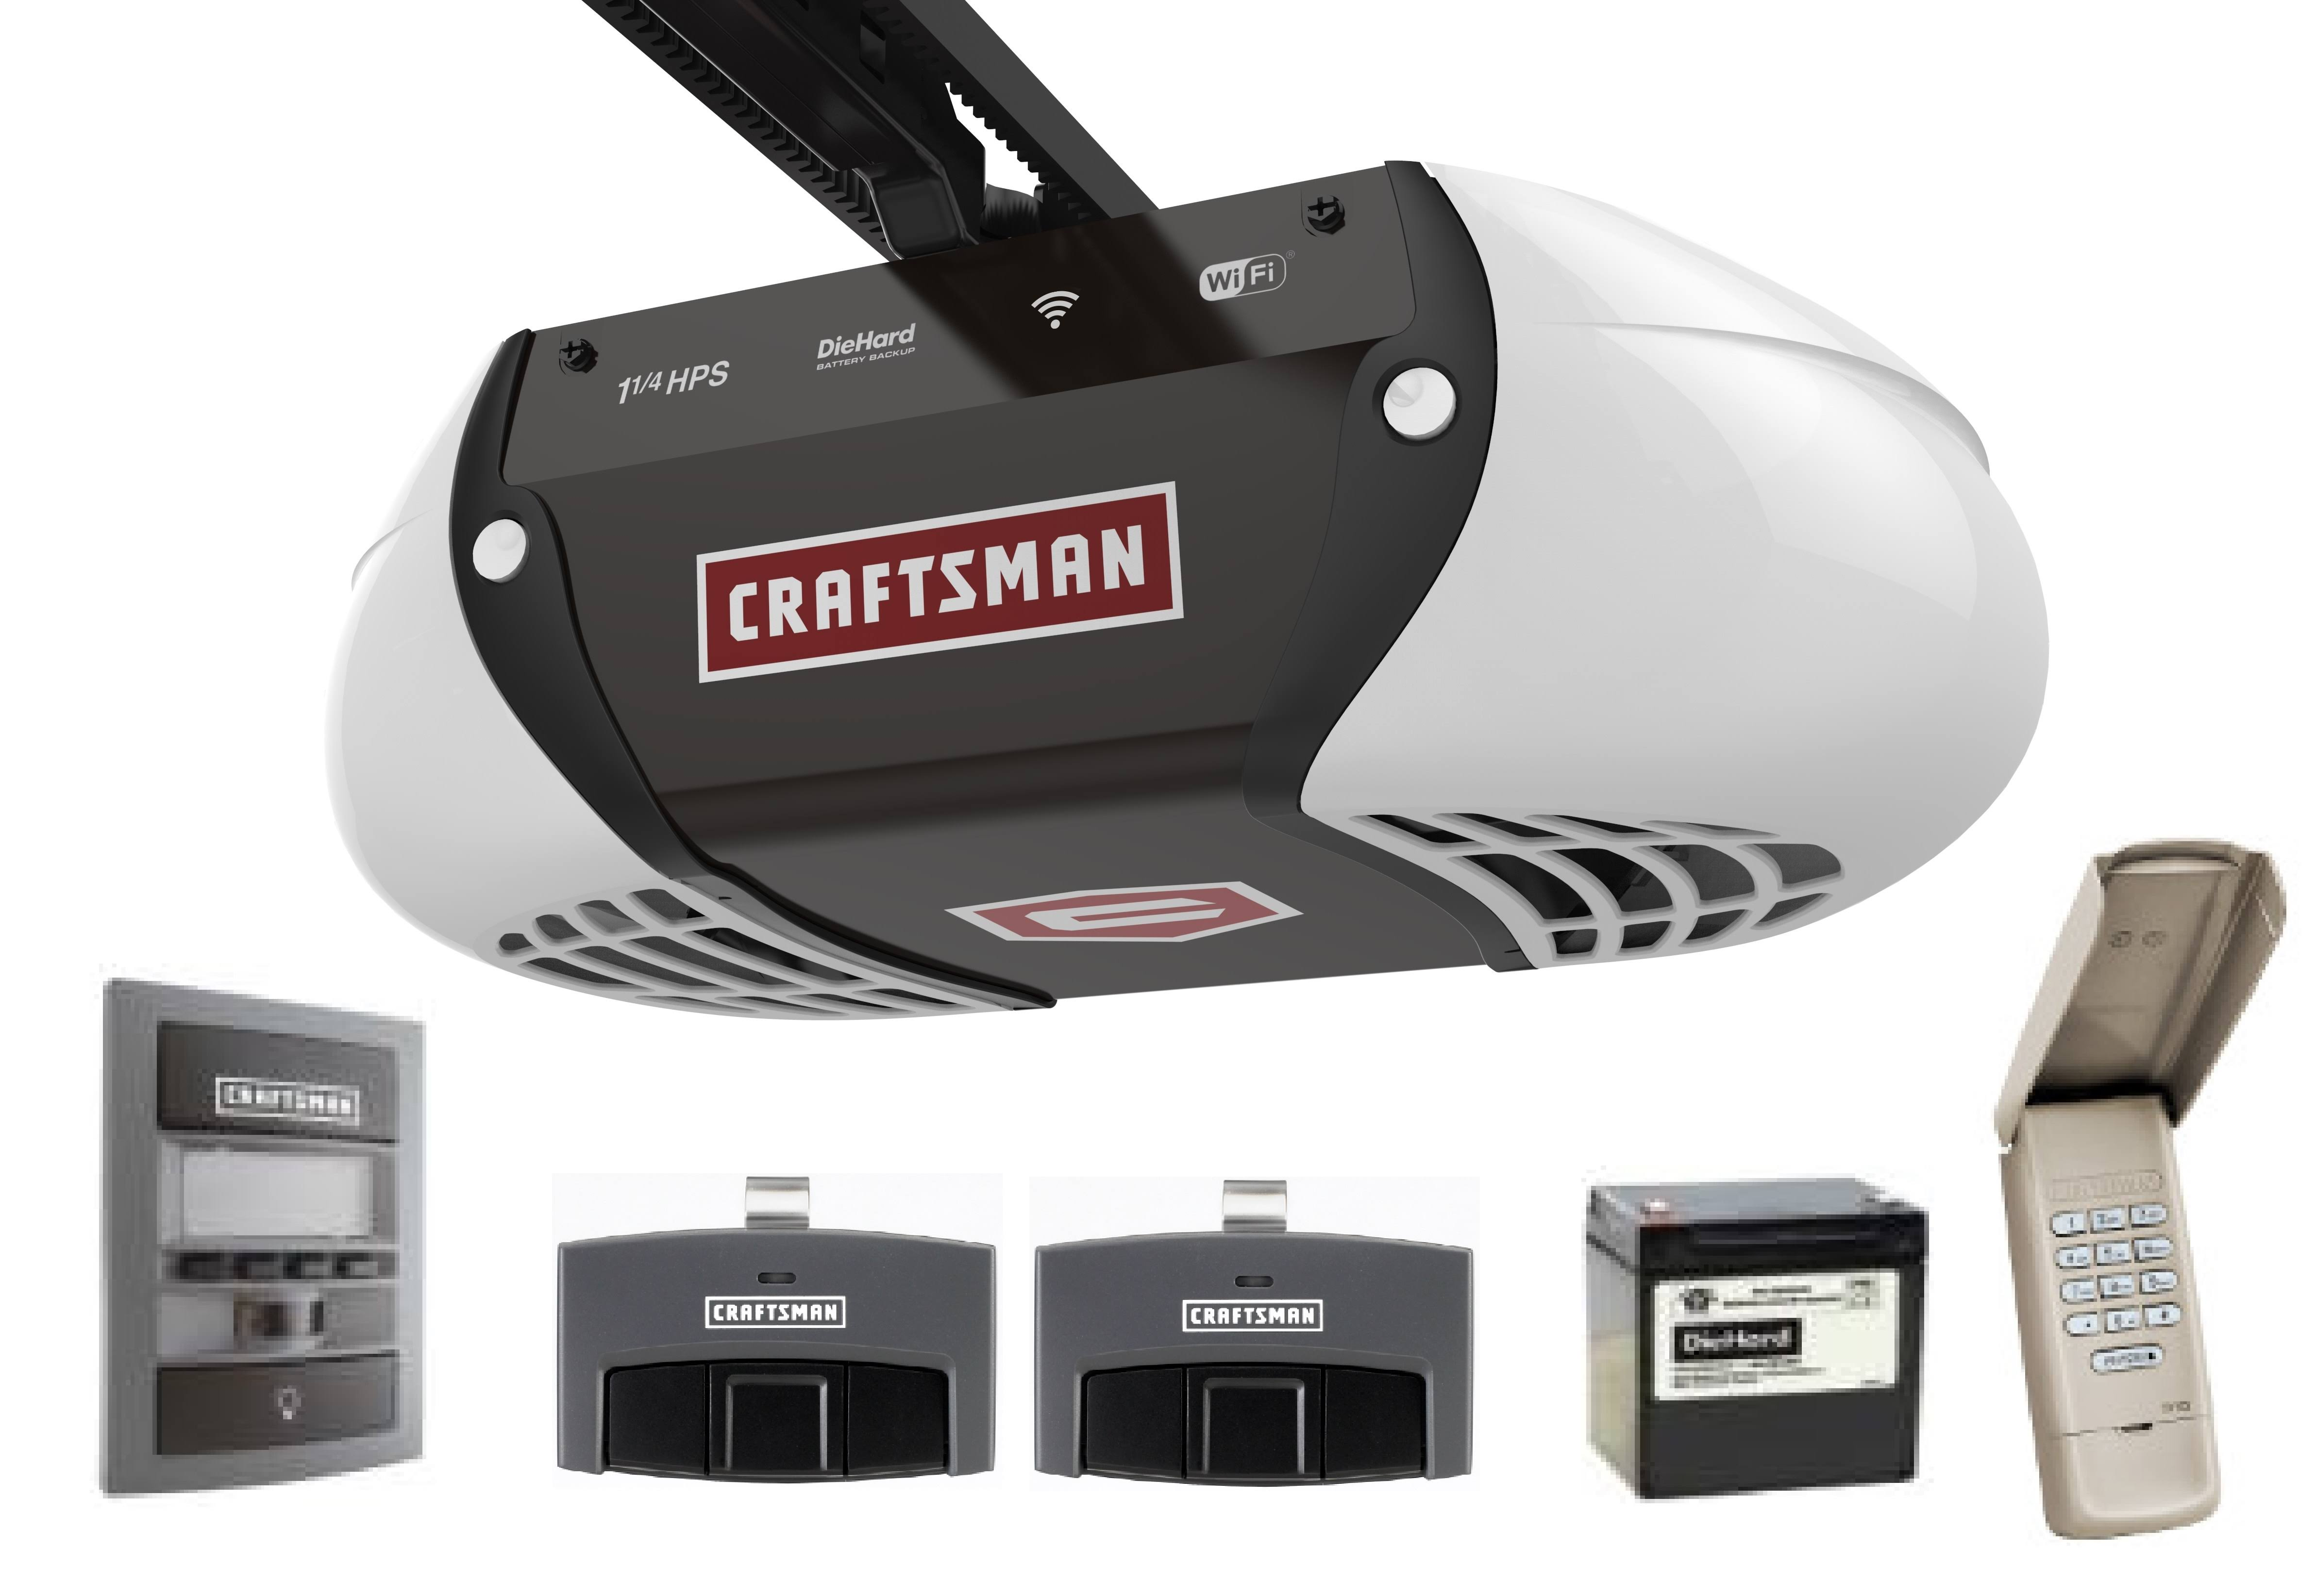 Craftsman Smart Garage Door Opener 1 1/4 HPS 2 Remotes Control